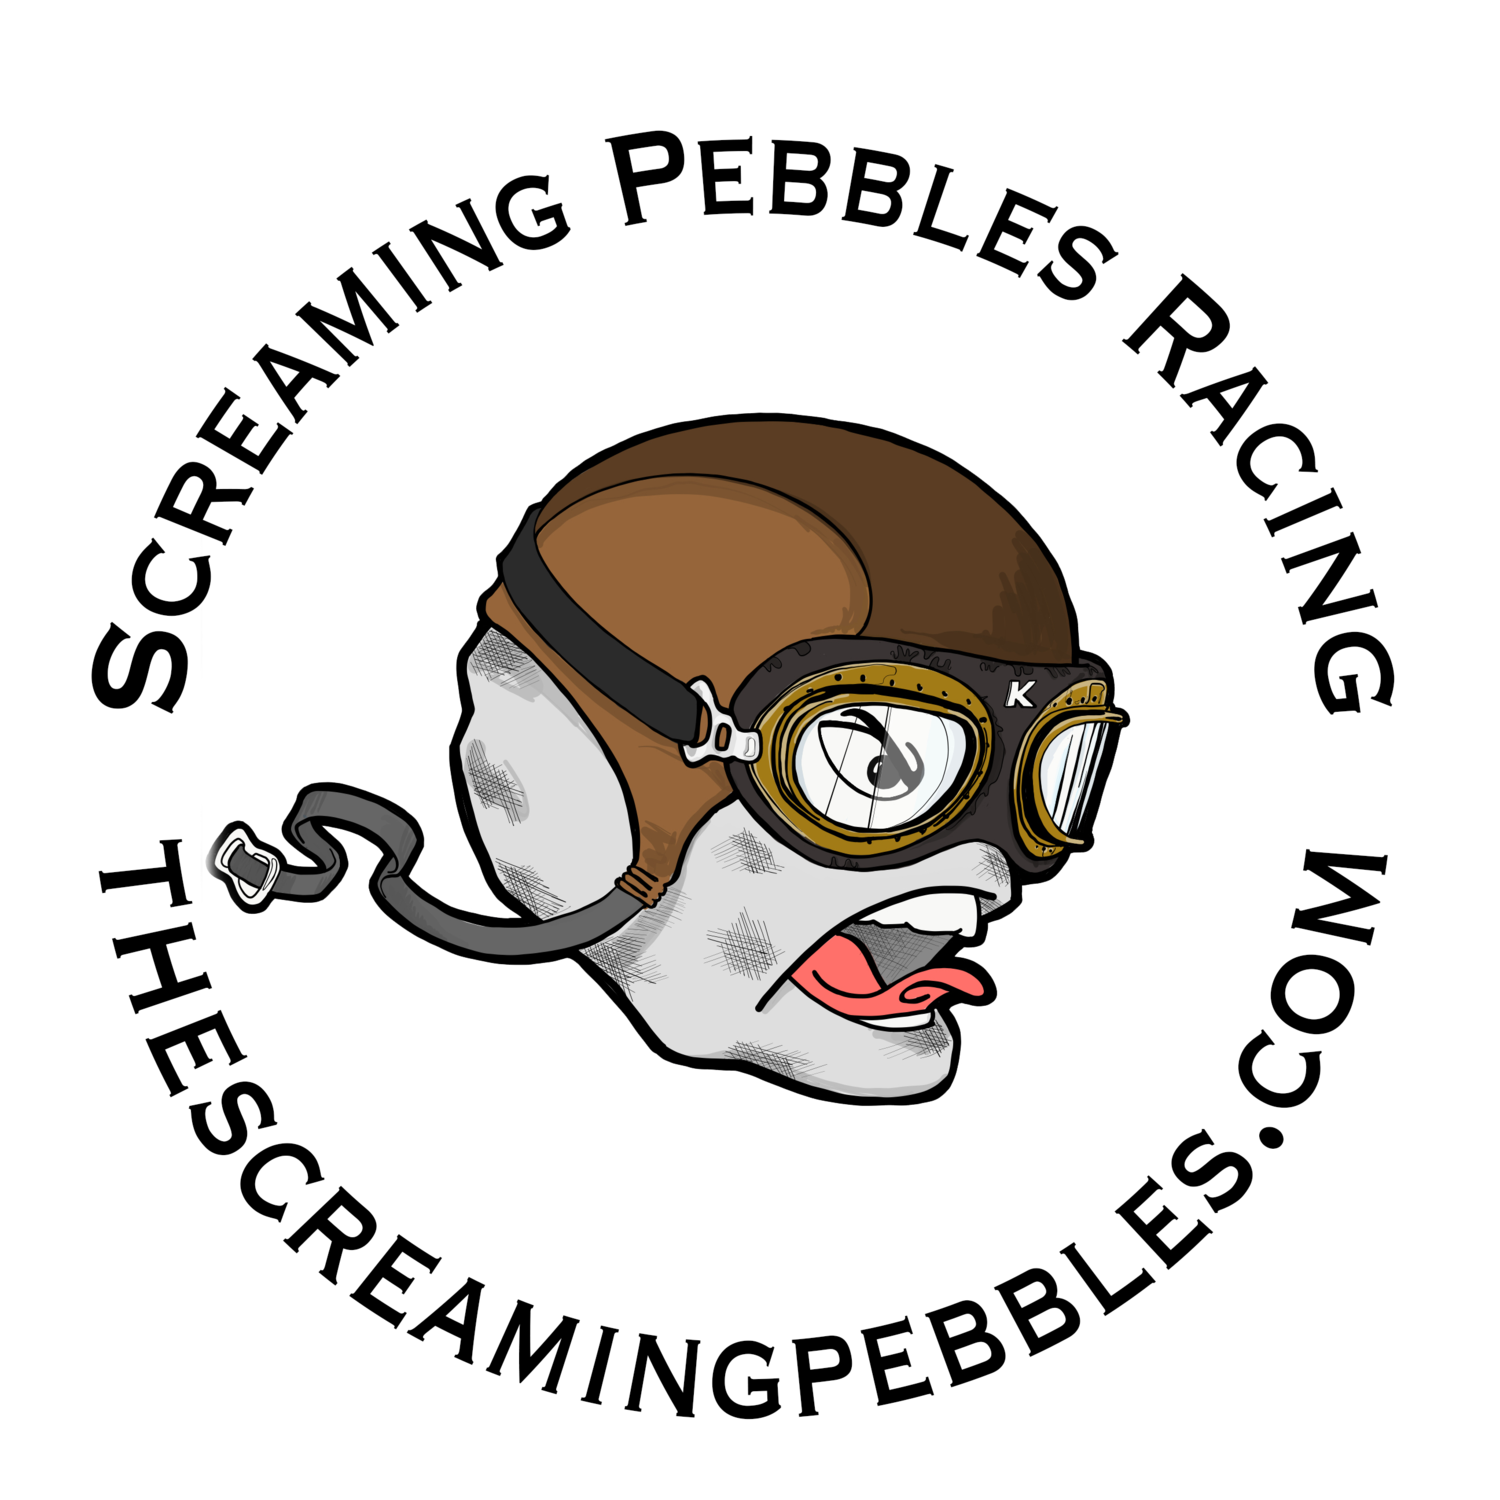 The Screaming Pebbles